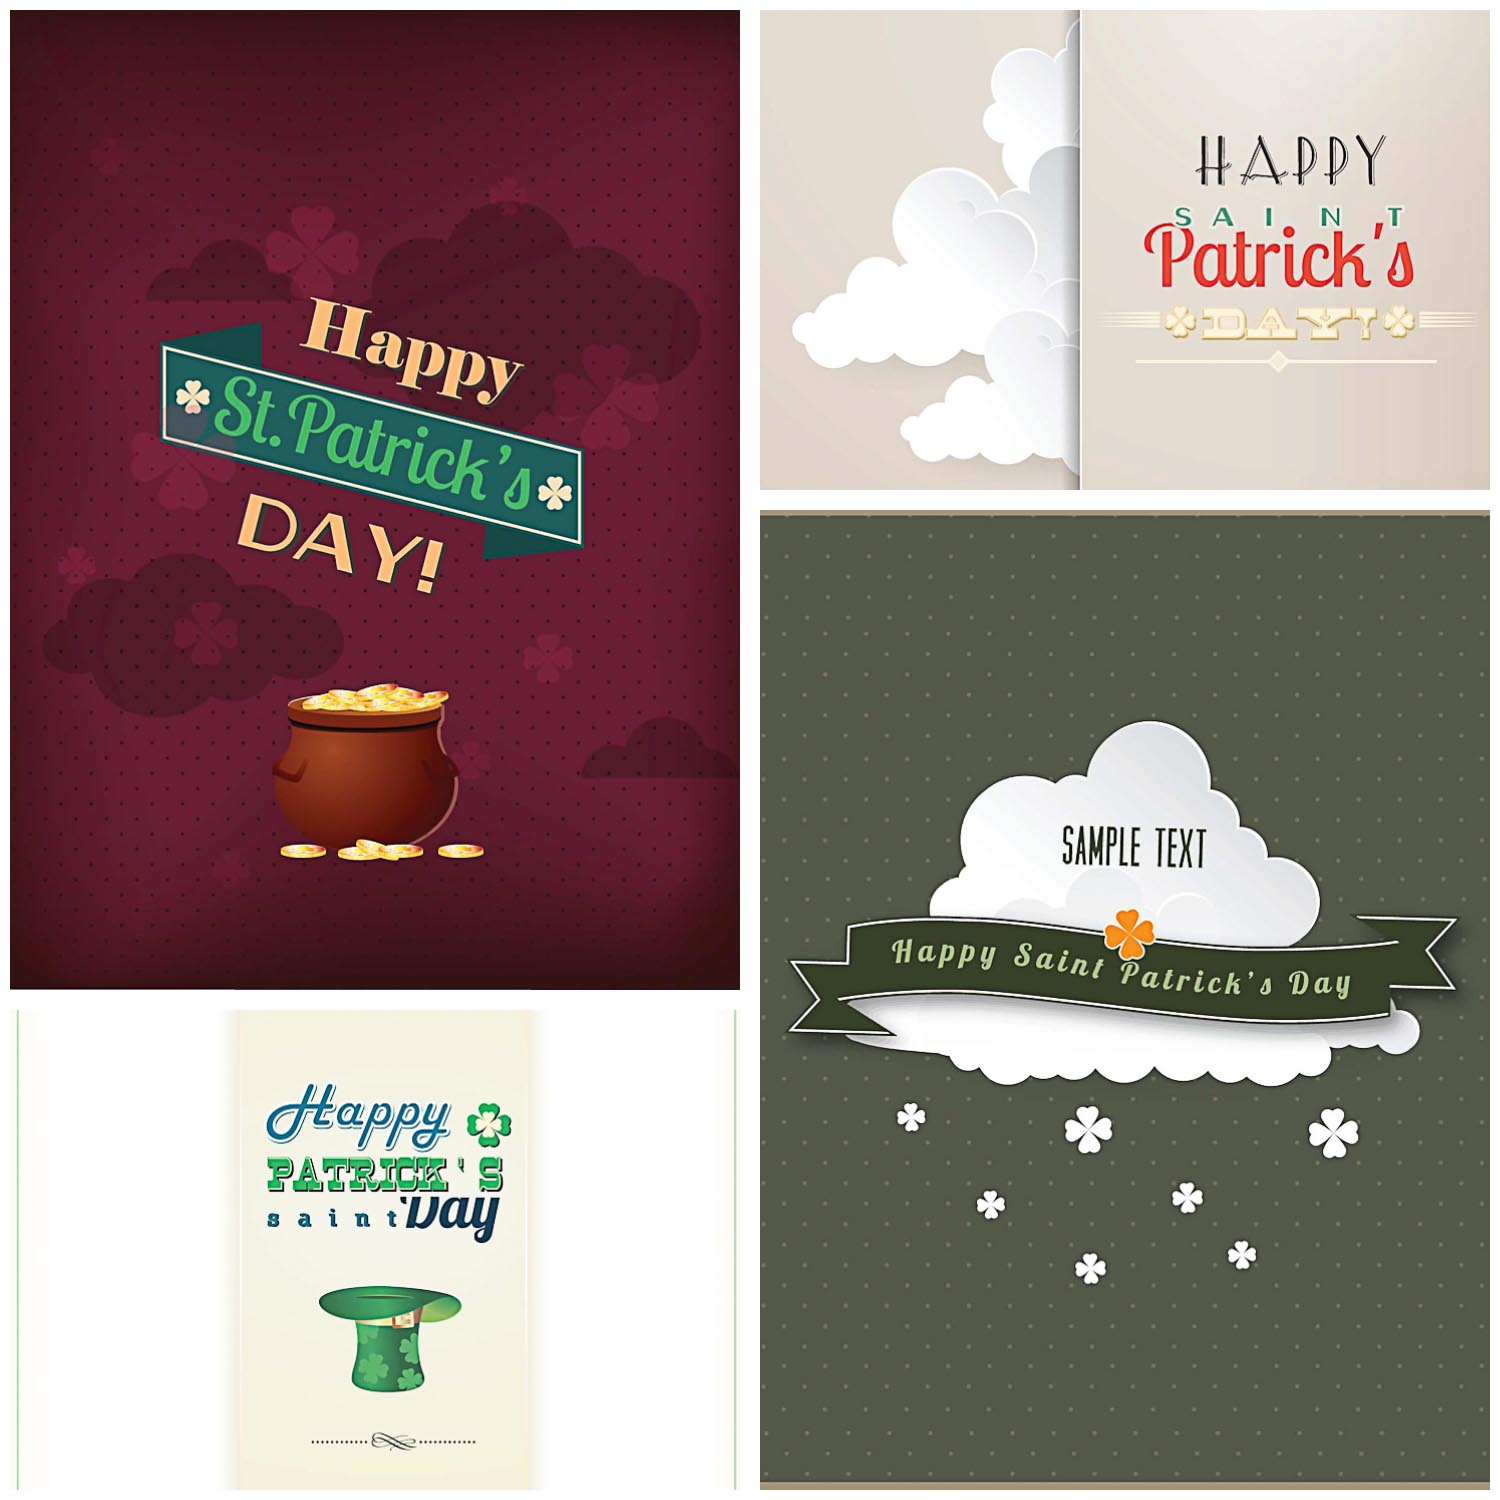 St.Patrick's Day greeting card vectors